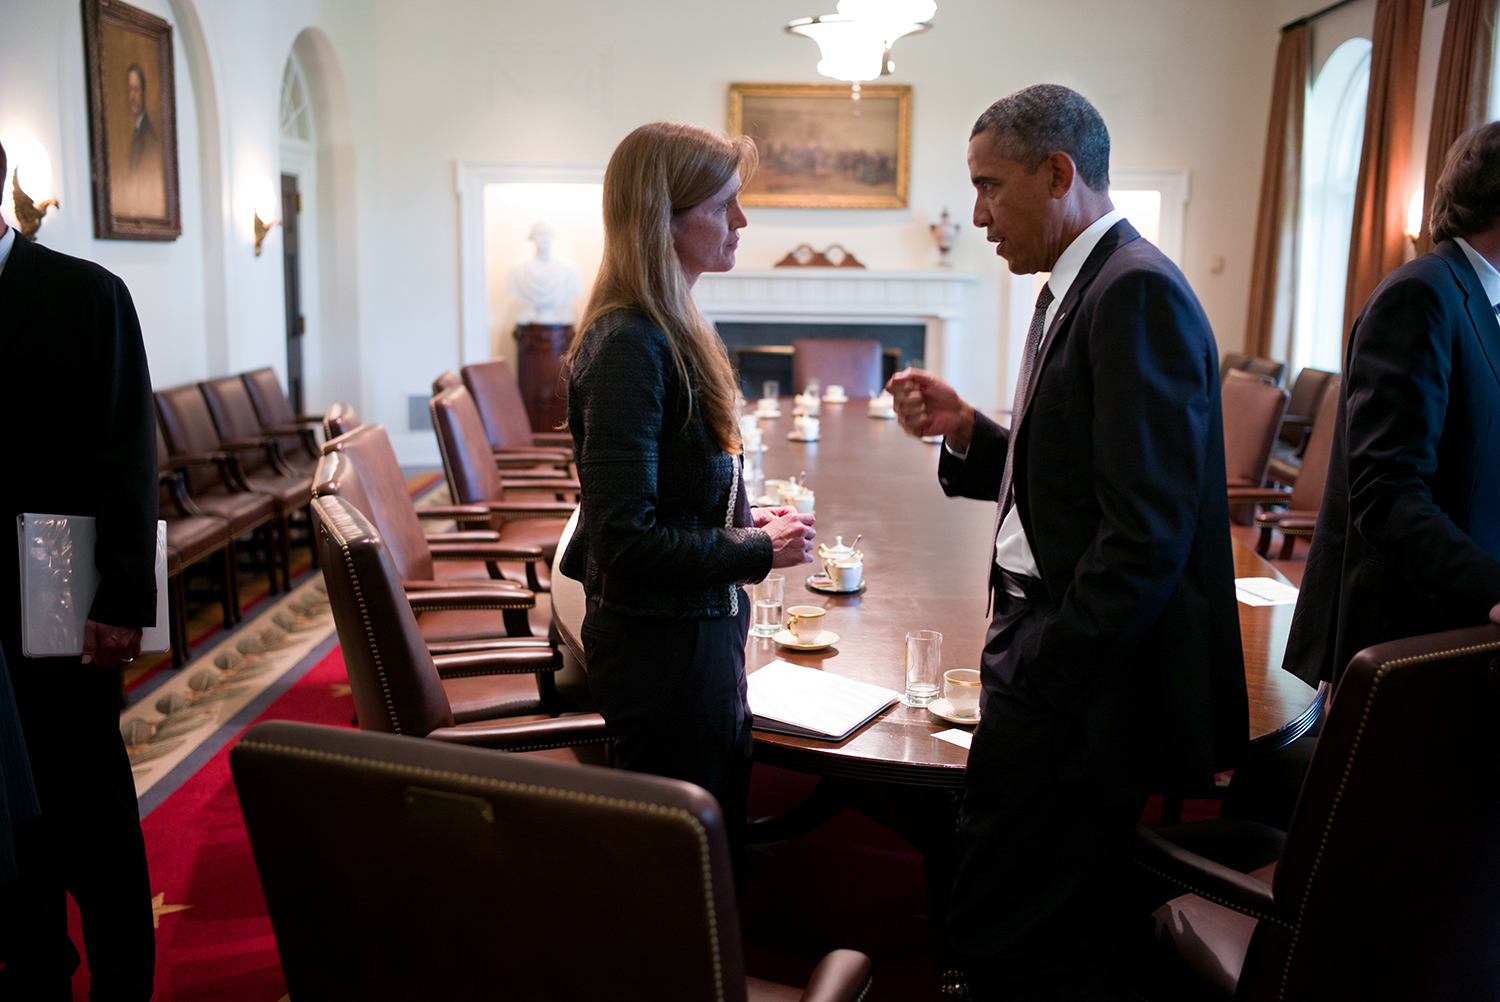 UN Ambassador Samantha Power conferring with President Barack Obama. From Greg Barker's 'The Final Year.' Courtesy of Magnolia Pictures